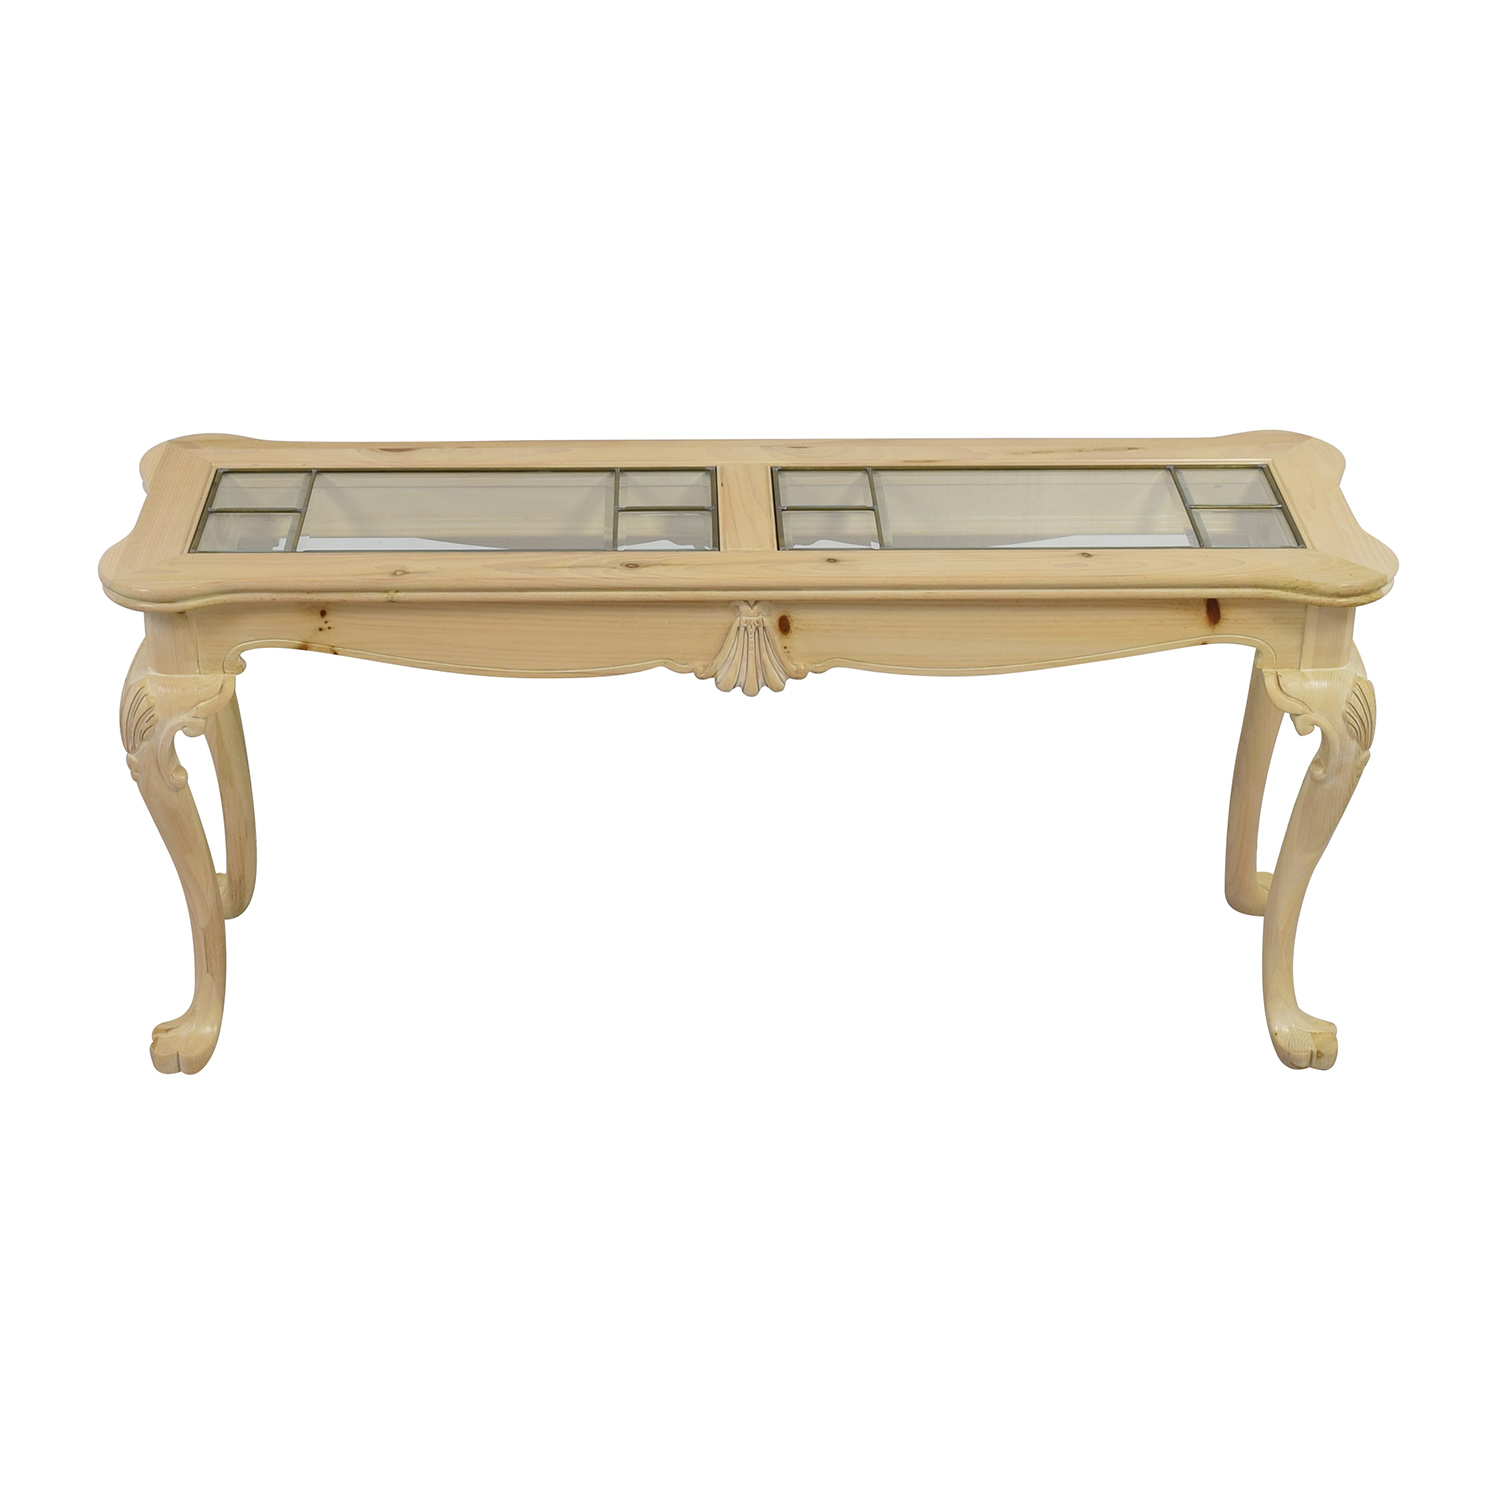 Lexington Lexington Natural Wood and Glass Sofa Table discount